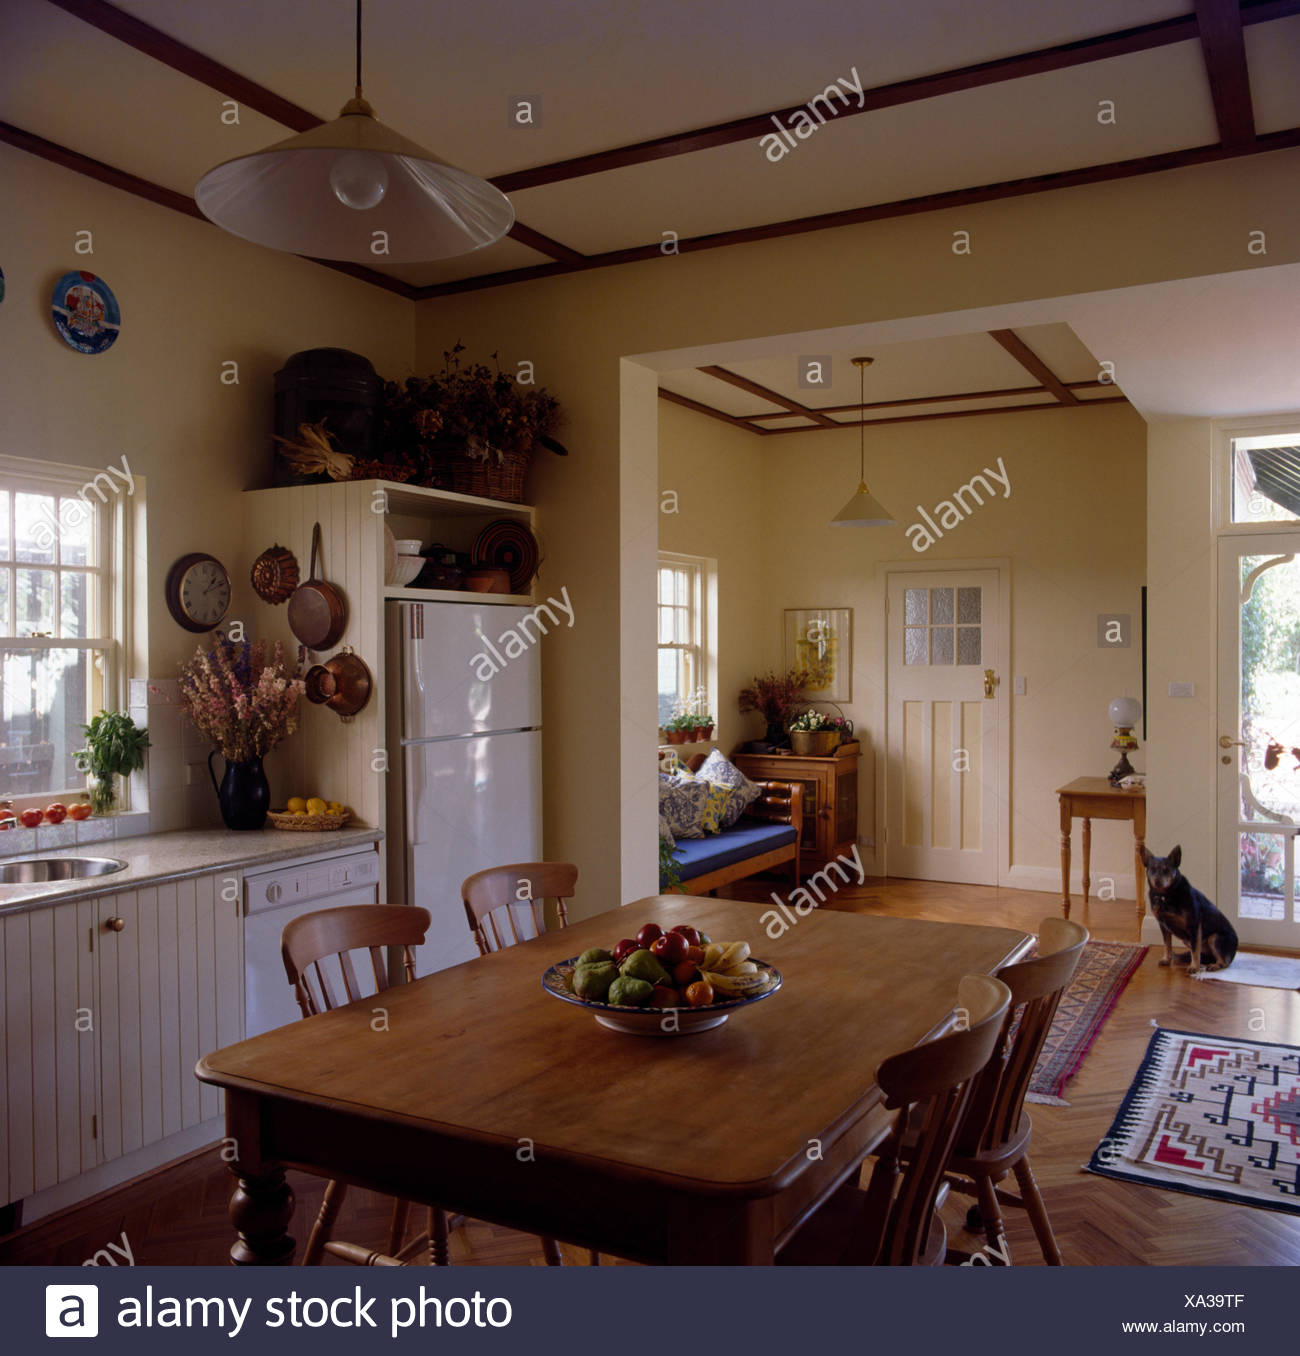 Vintage Pine Table And Chairs In An Open Plan Traditional Kitchen With A Dog Sitting